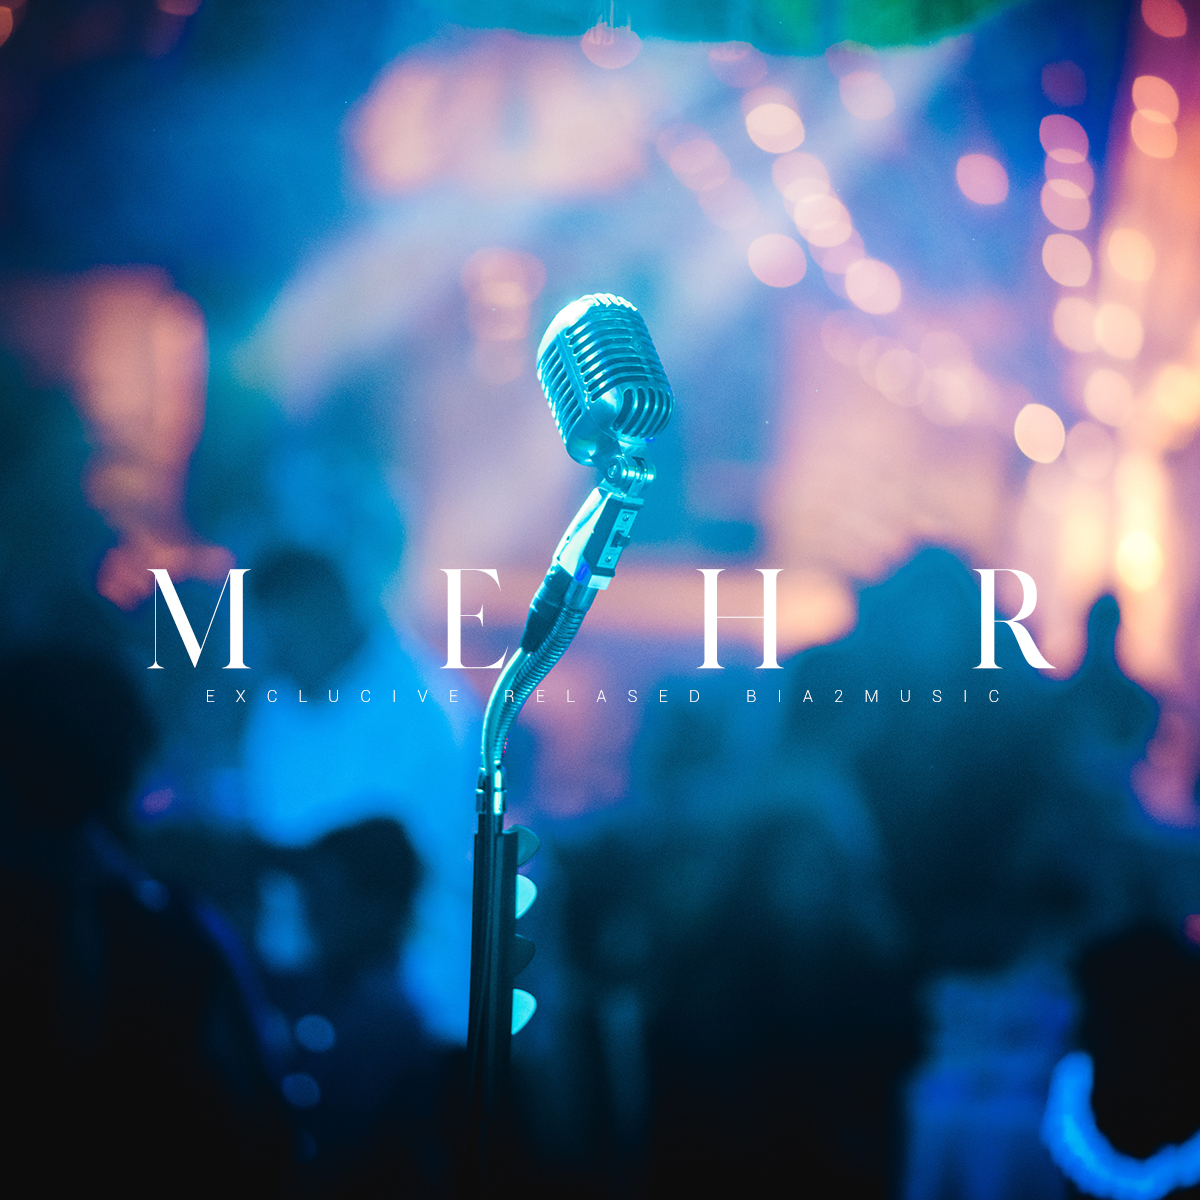 Top Music – Mehr 1397